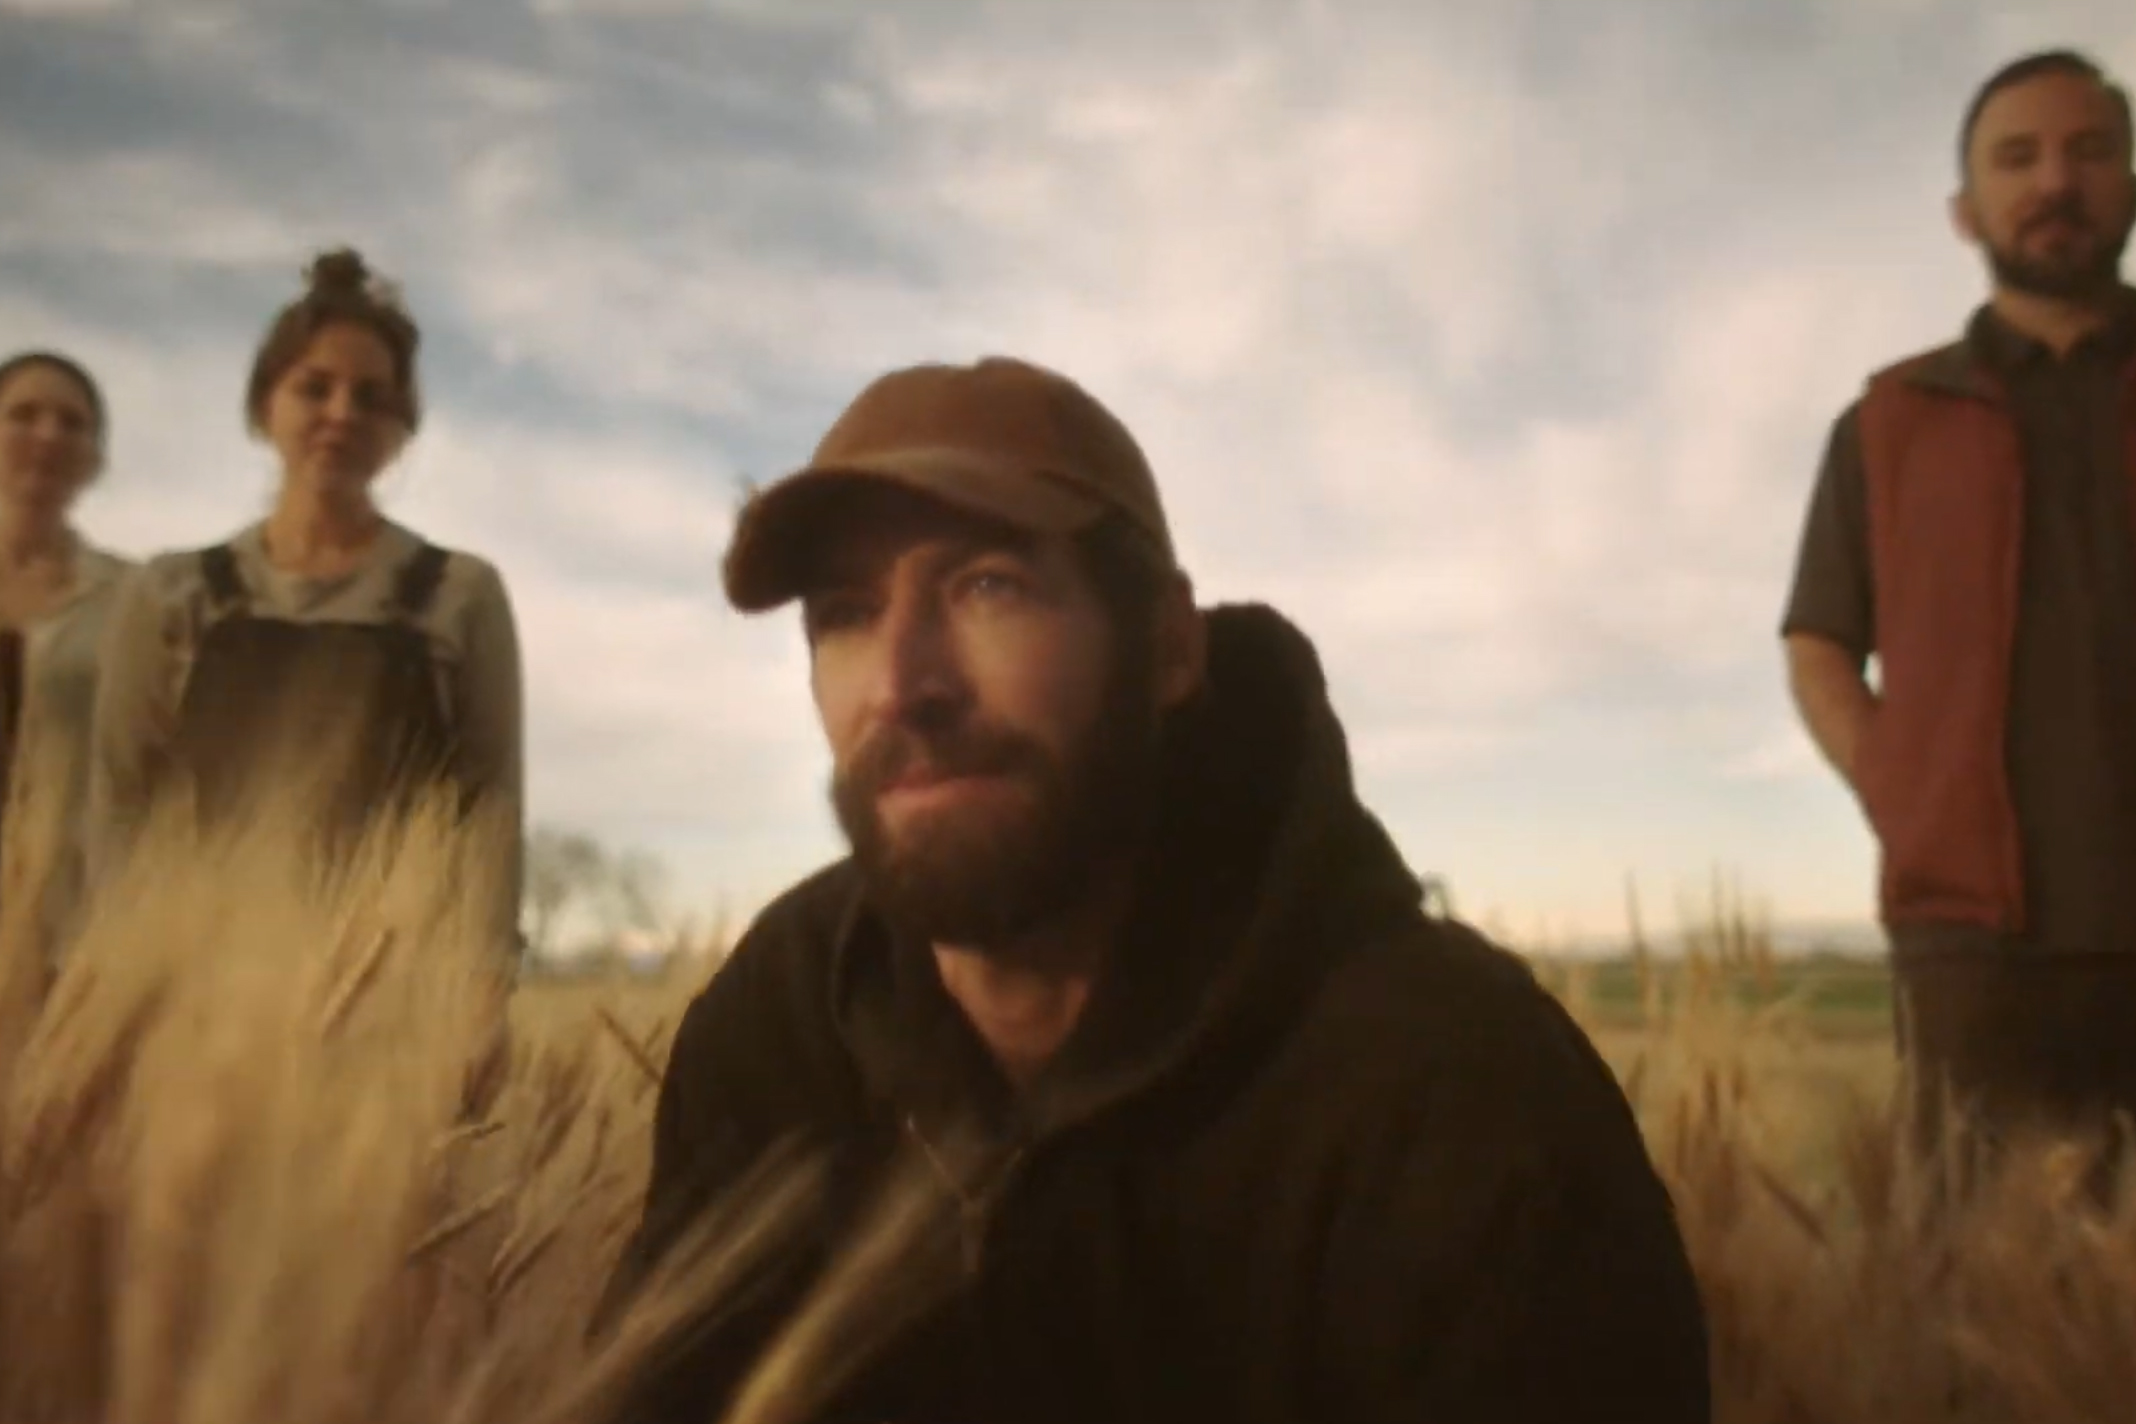 Michelob Ultra pledges support for organic farming via Pure Gold Super Bowl spot